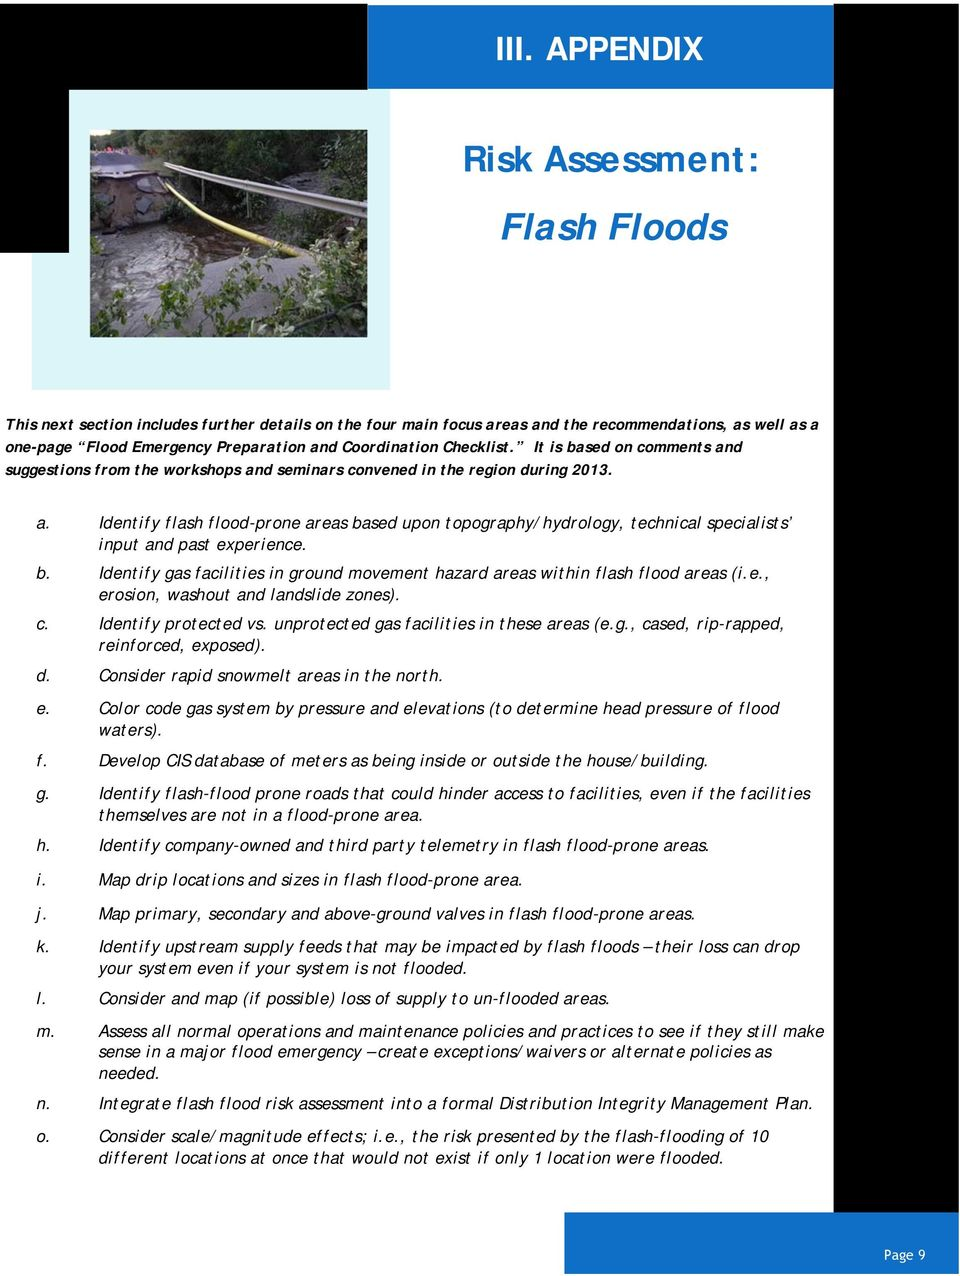 b. Identify gas facilities in ground movement hazard areas within flash flood areas (i.e., erosion, washout and landslide zones). c. Identify protected vs.